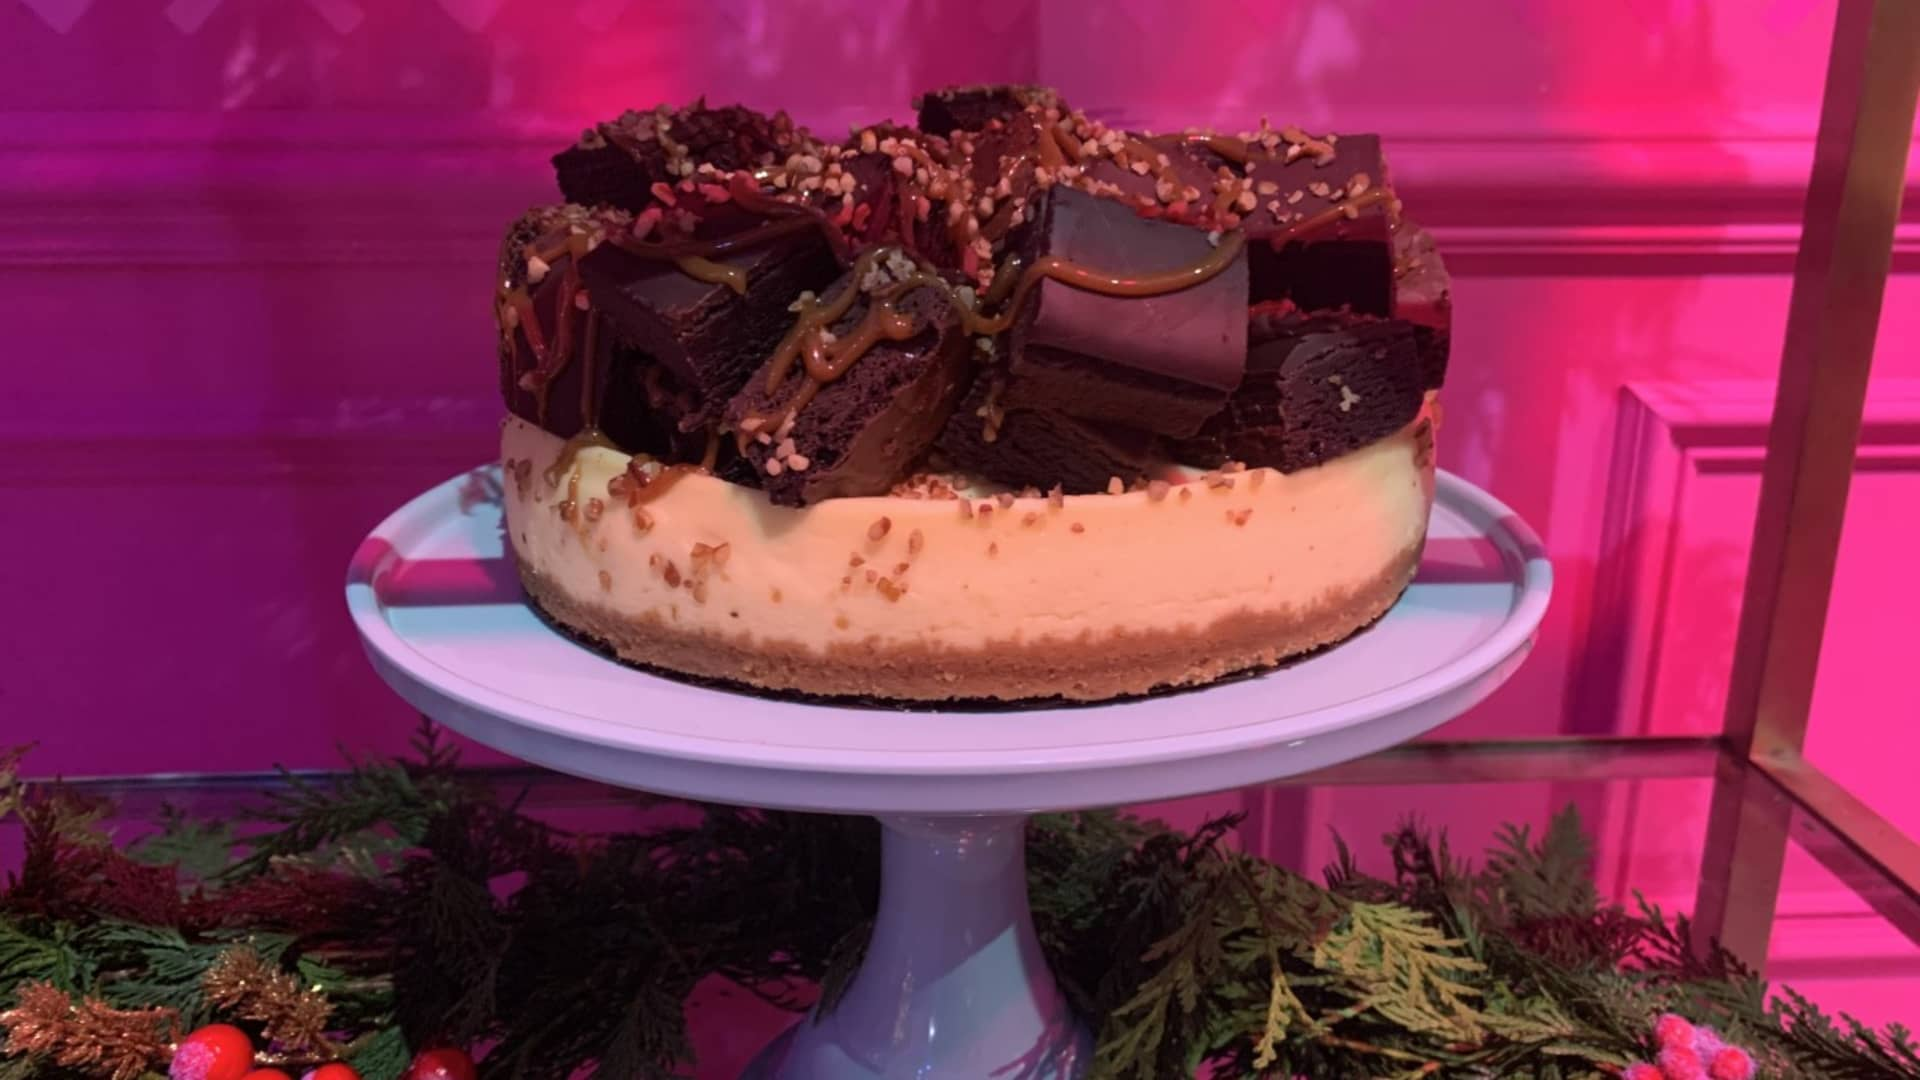 Sam's Club developed holiday desserts that are meant to be crowd-pleasers, including a brownie-topped cheesecake and pumpkin spice cakeballs.